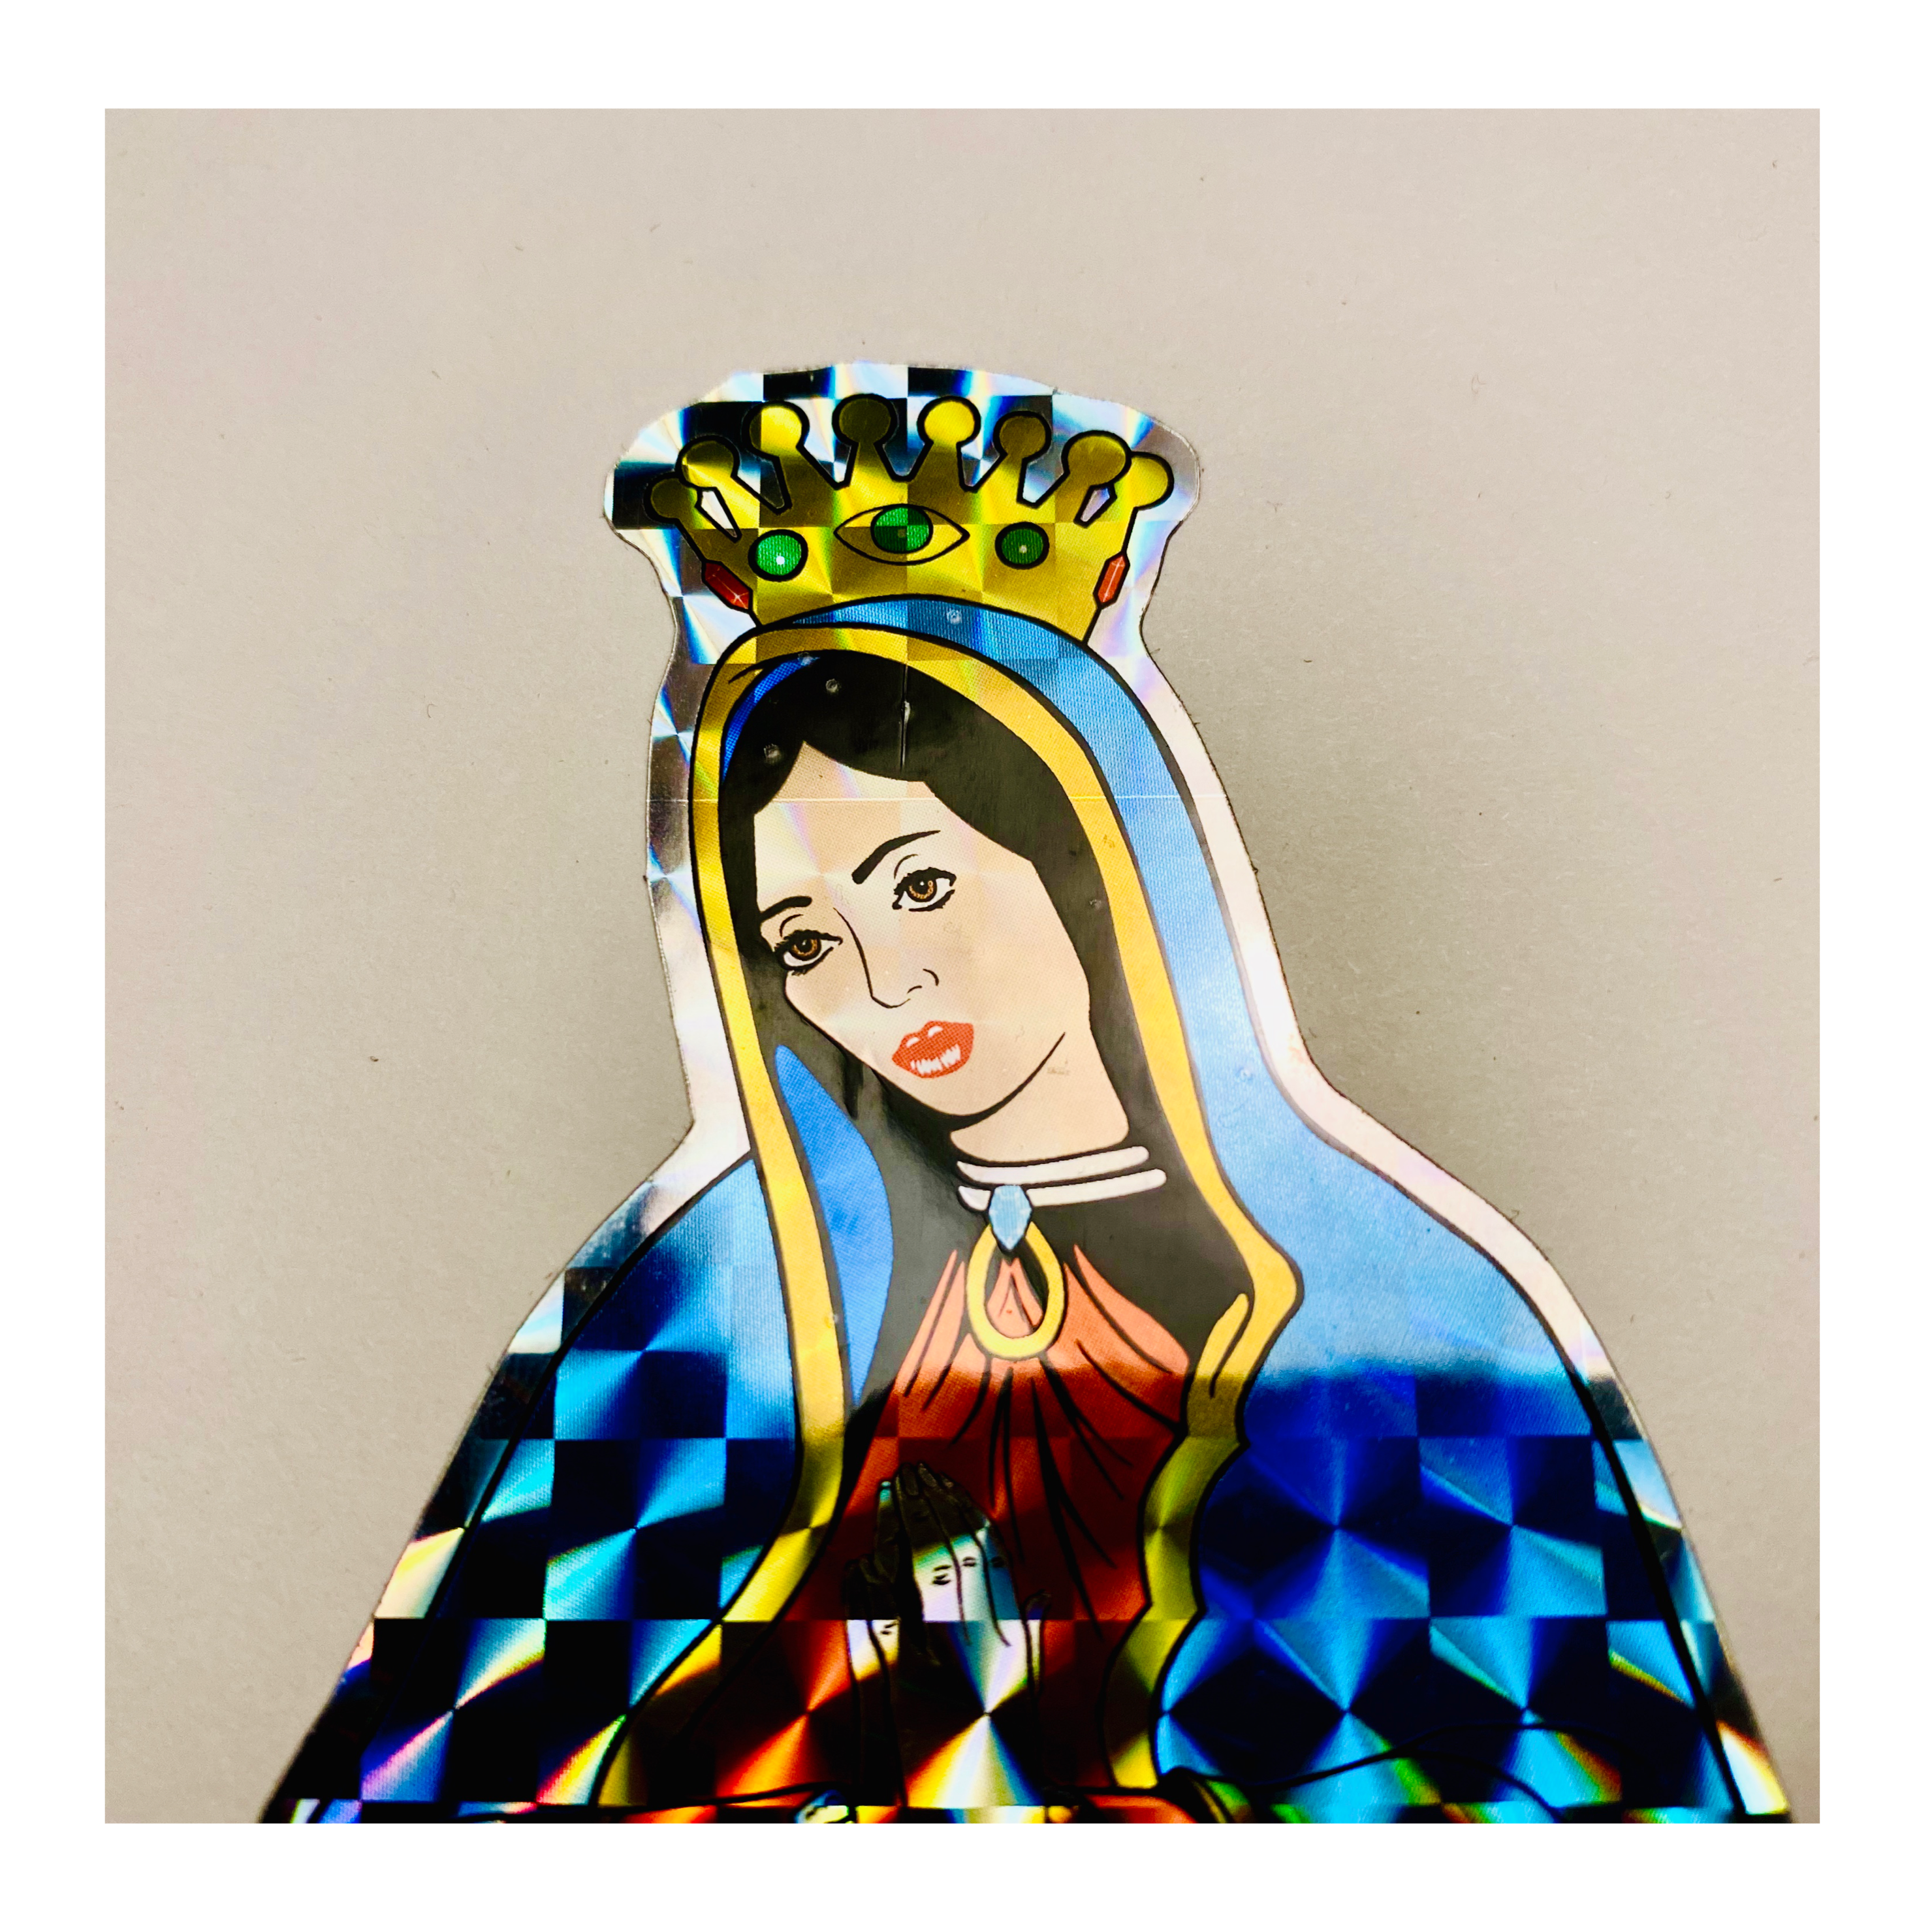 GUADALUPE de JASON JESSEE PRISMATIC STICKER